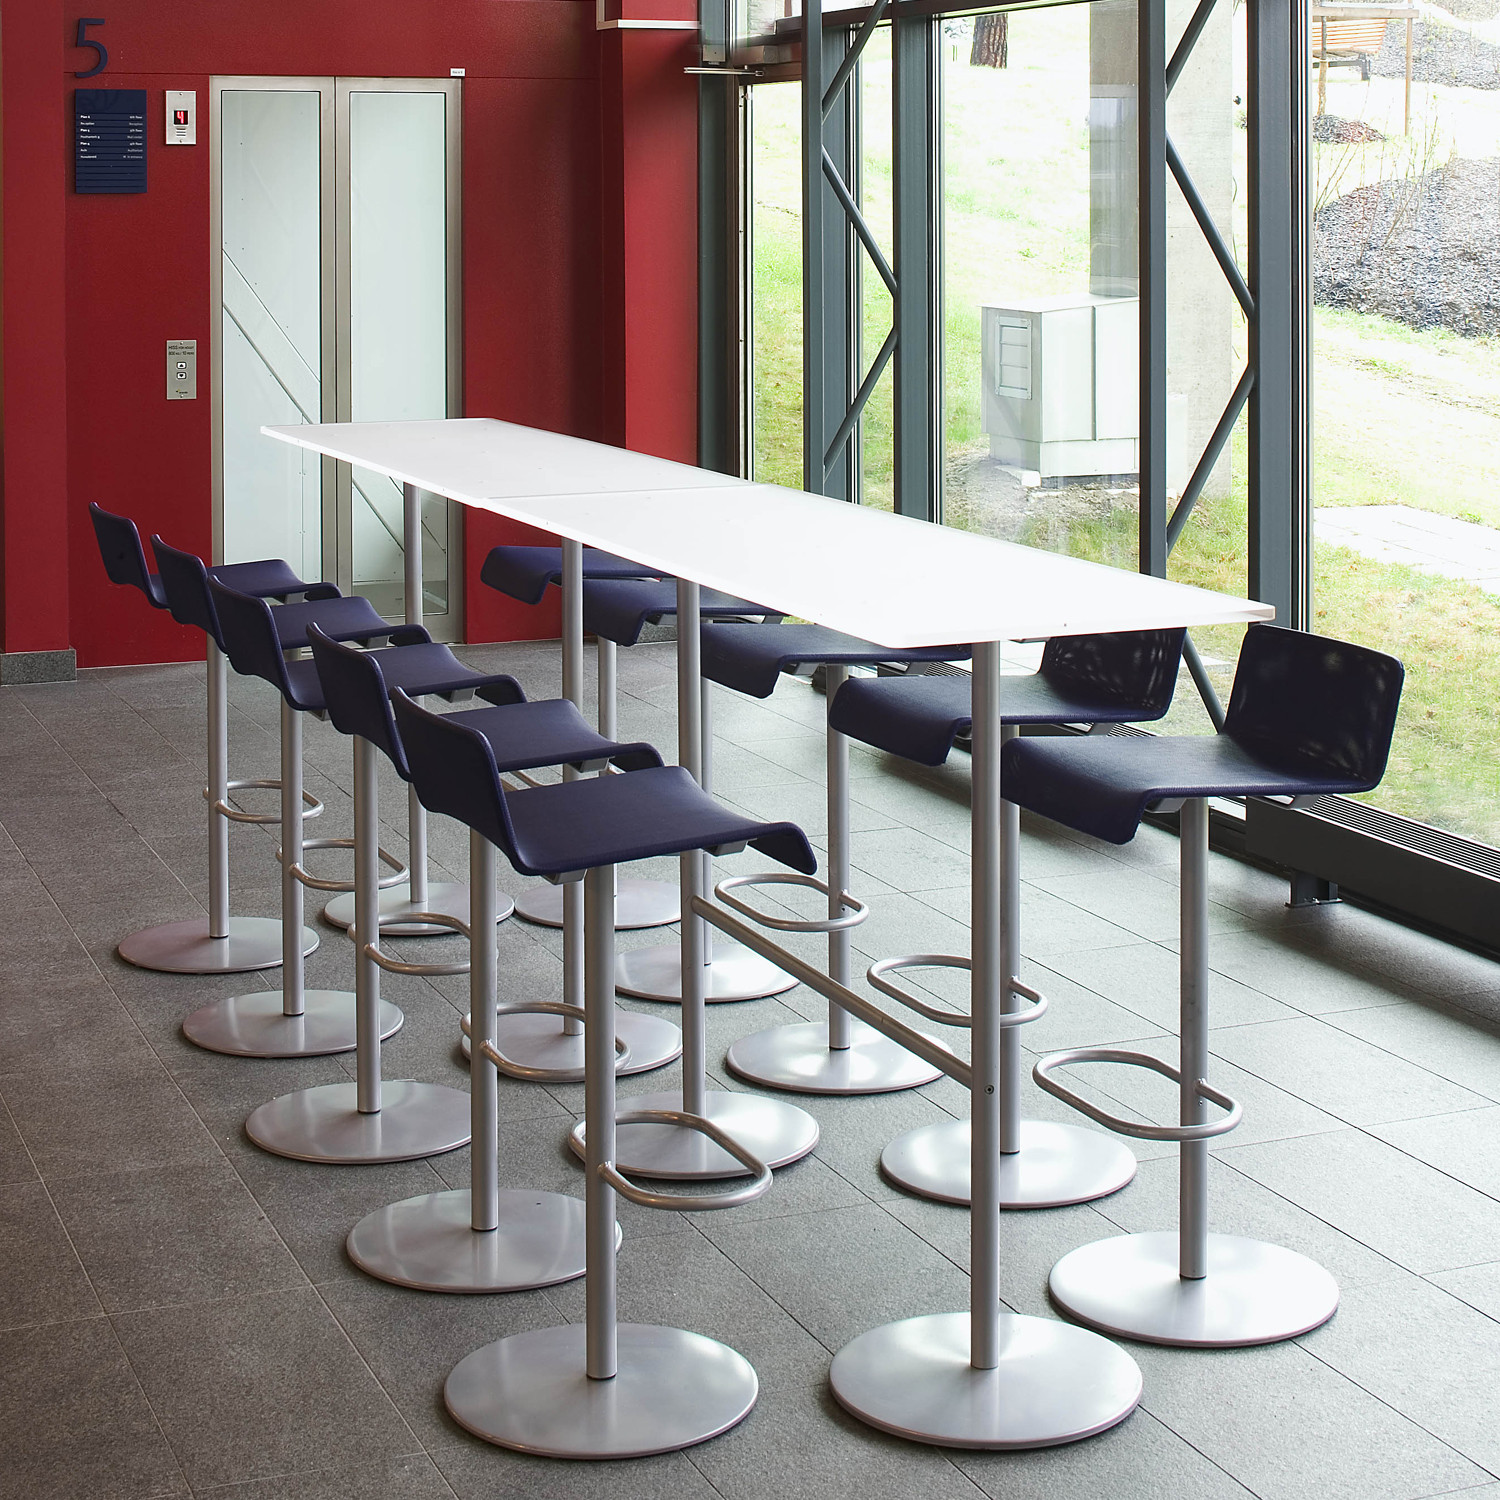 Millibar Barstools and Millibar Bar Height Table